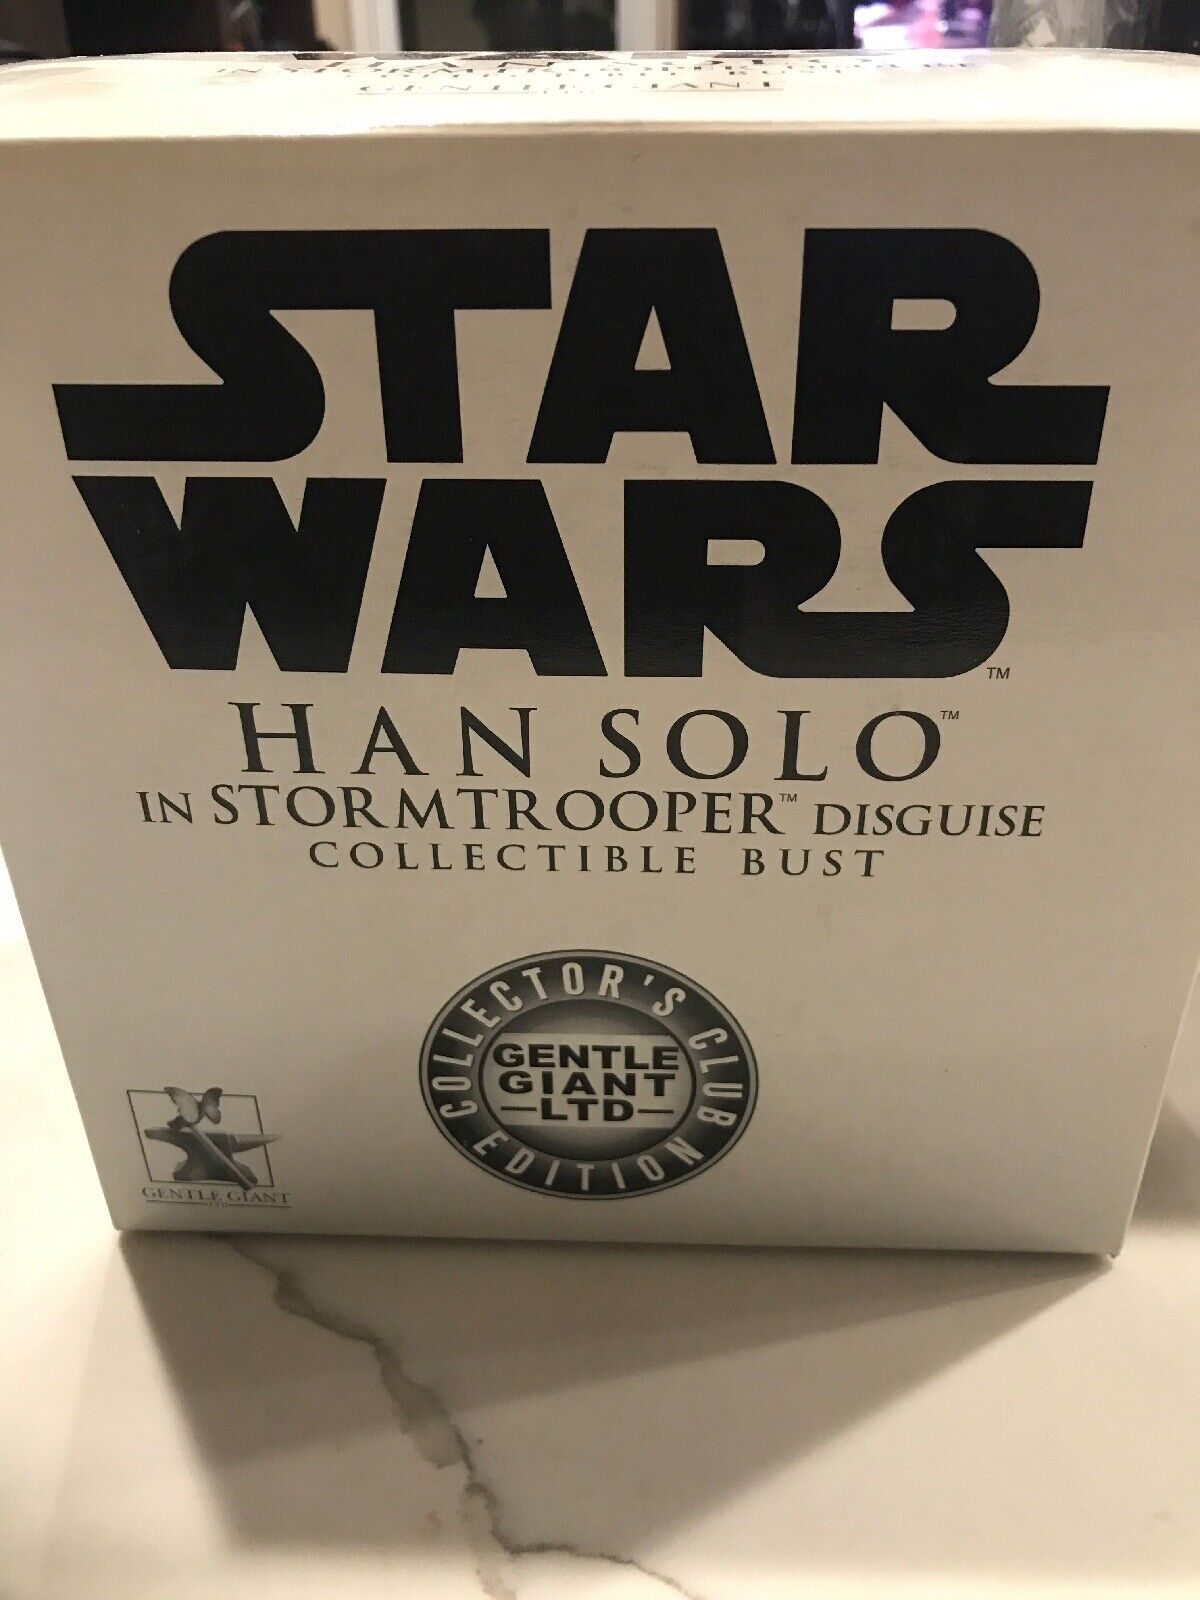 STAR WARS Han Solo Stormtrooper Disguise  298 3500 Mini Bust Exclusive